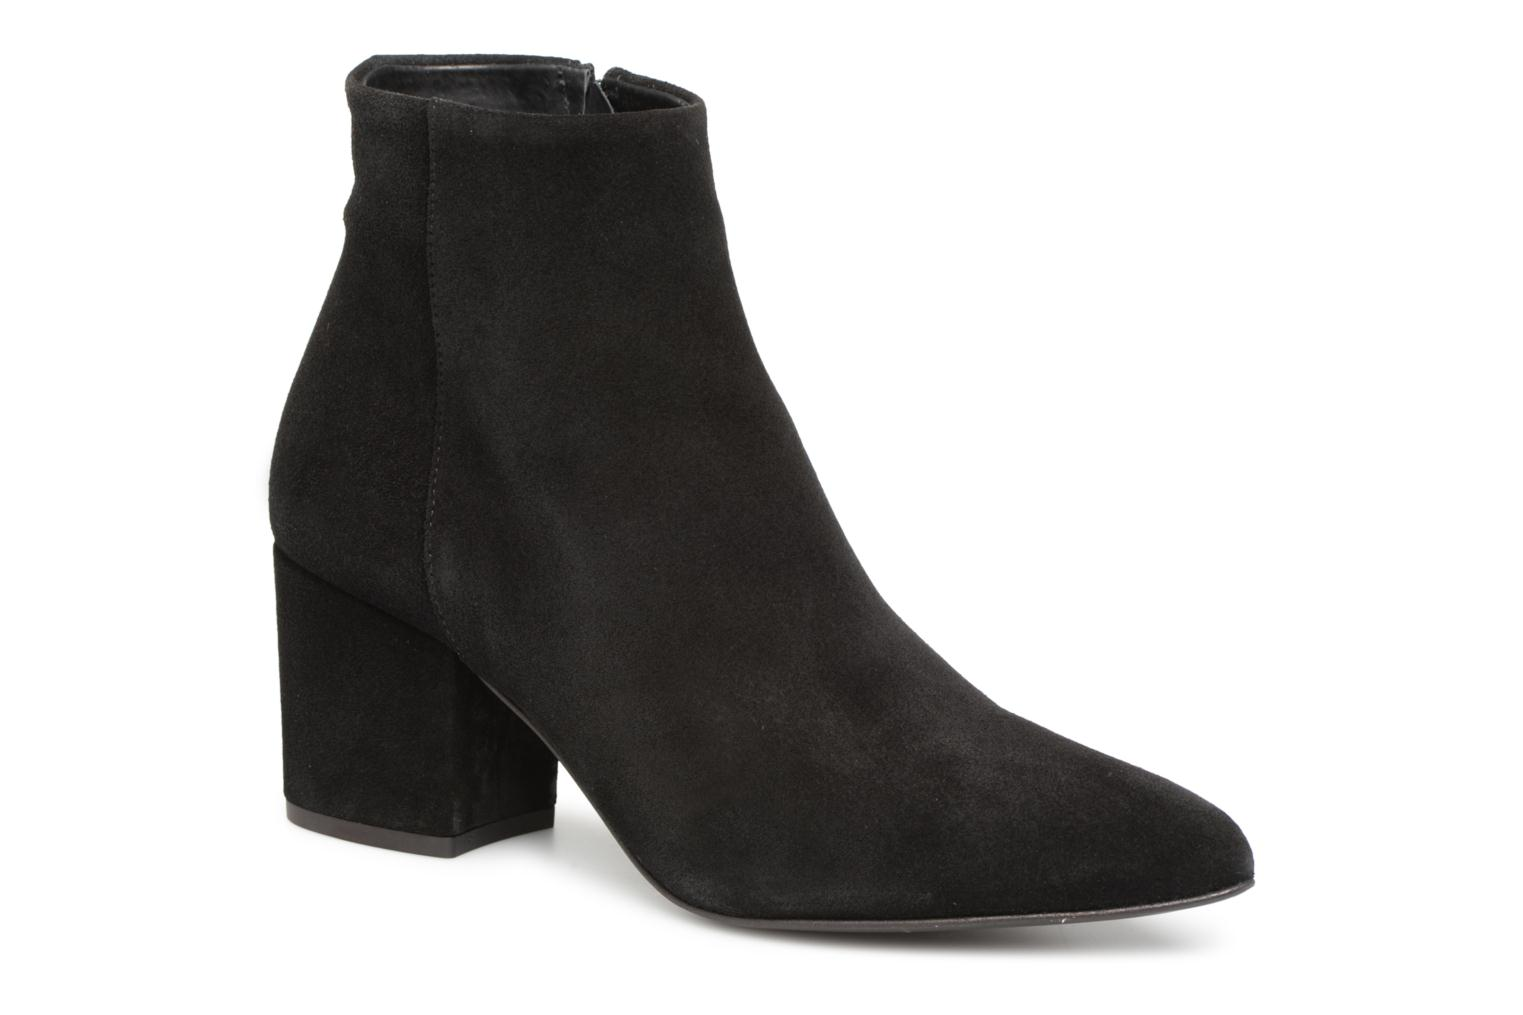 VMASTRID LEATHER BOOT par Vero Moda